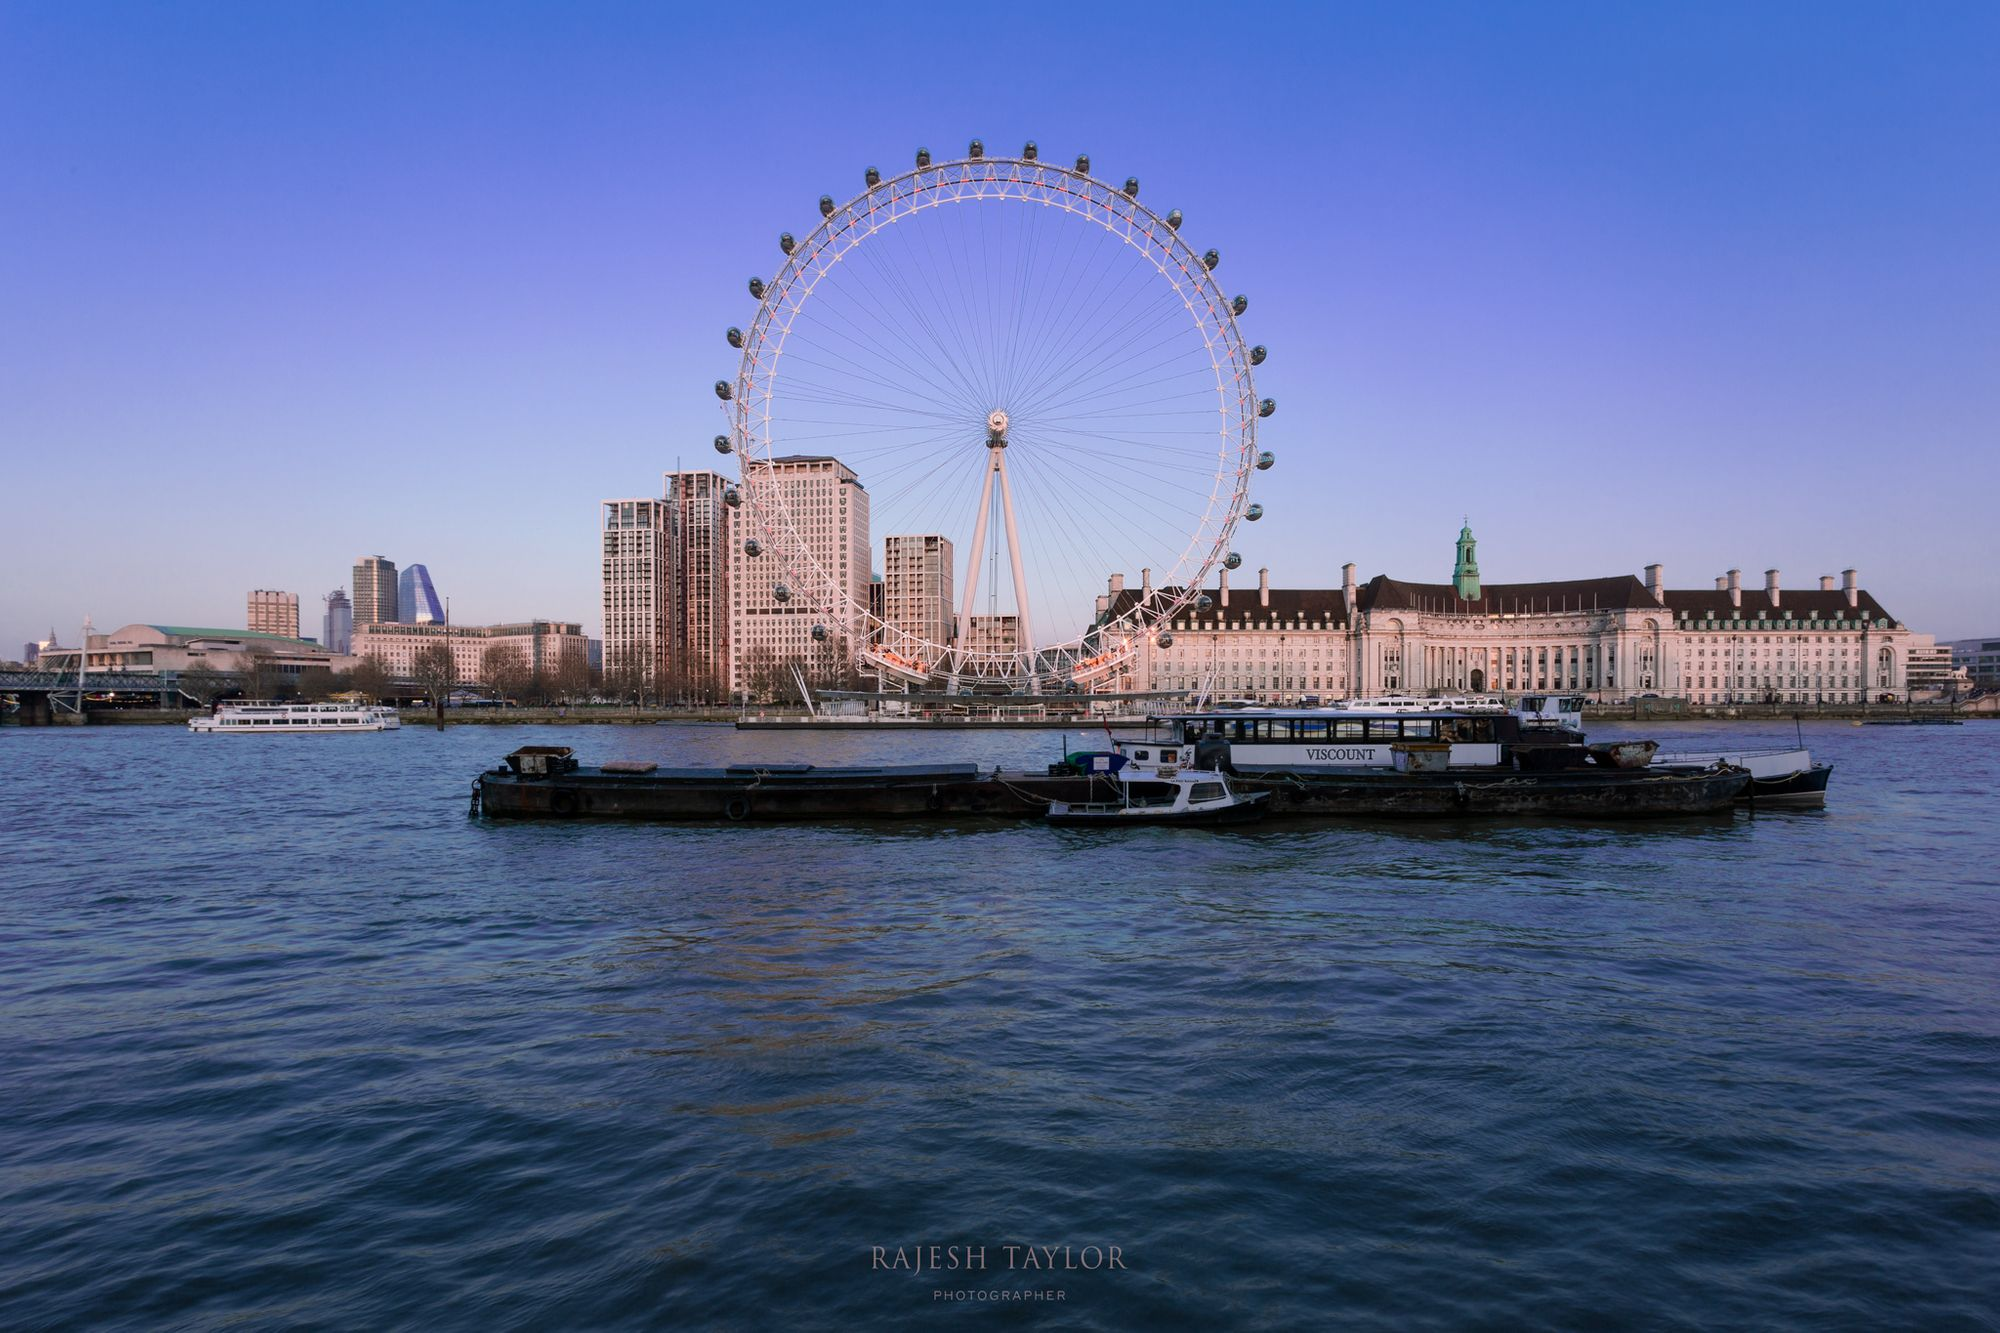 The London Eye or for Whovians - The Circular Transmitter at sunset © Rajesh Taylor